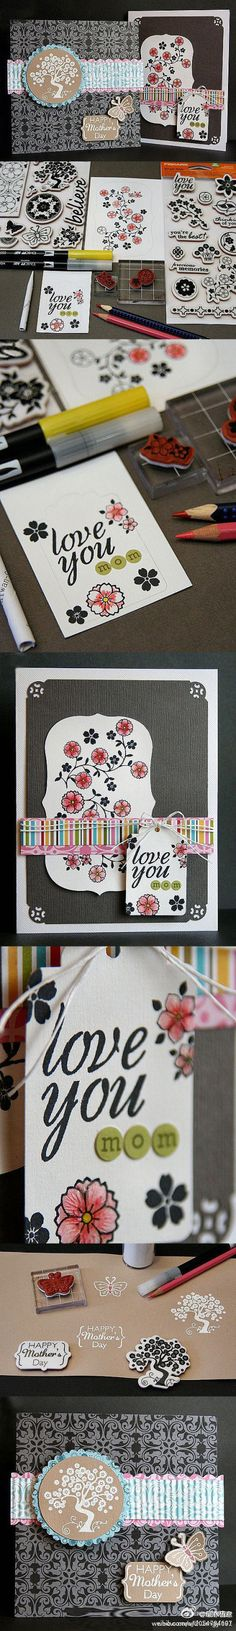 scrap booking idea This is very good. Hum taking off with this idea. Happy scrap booking.